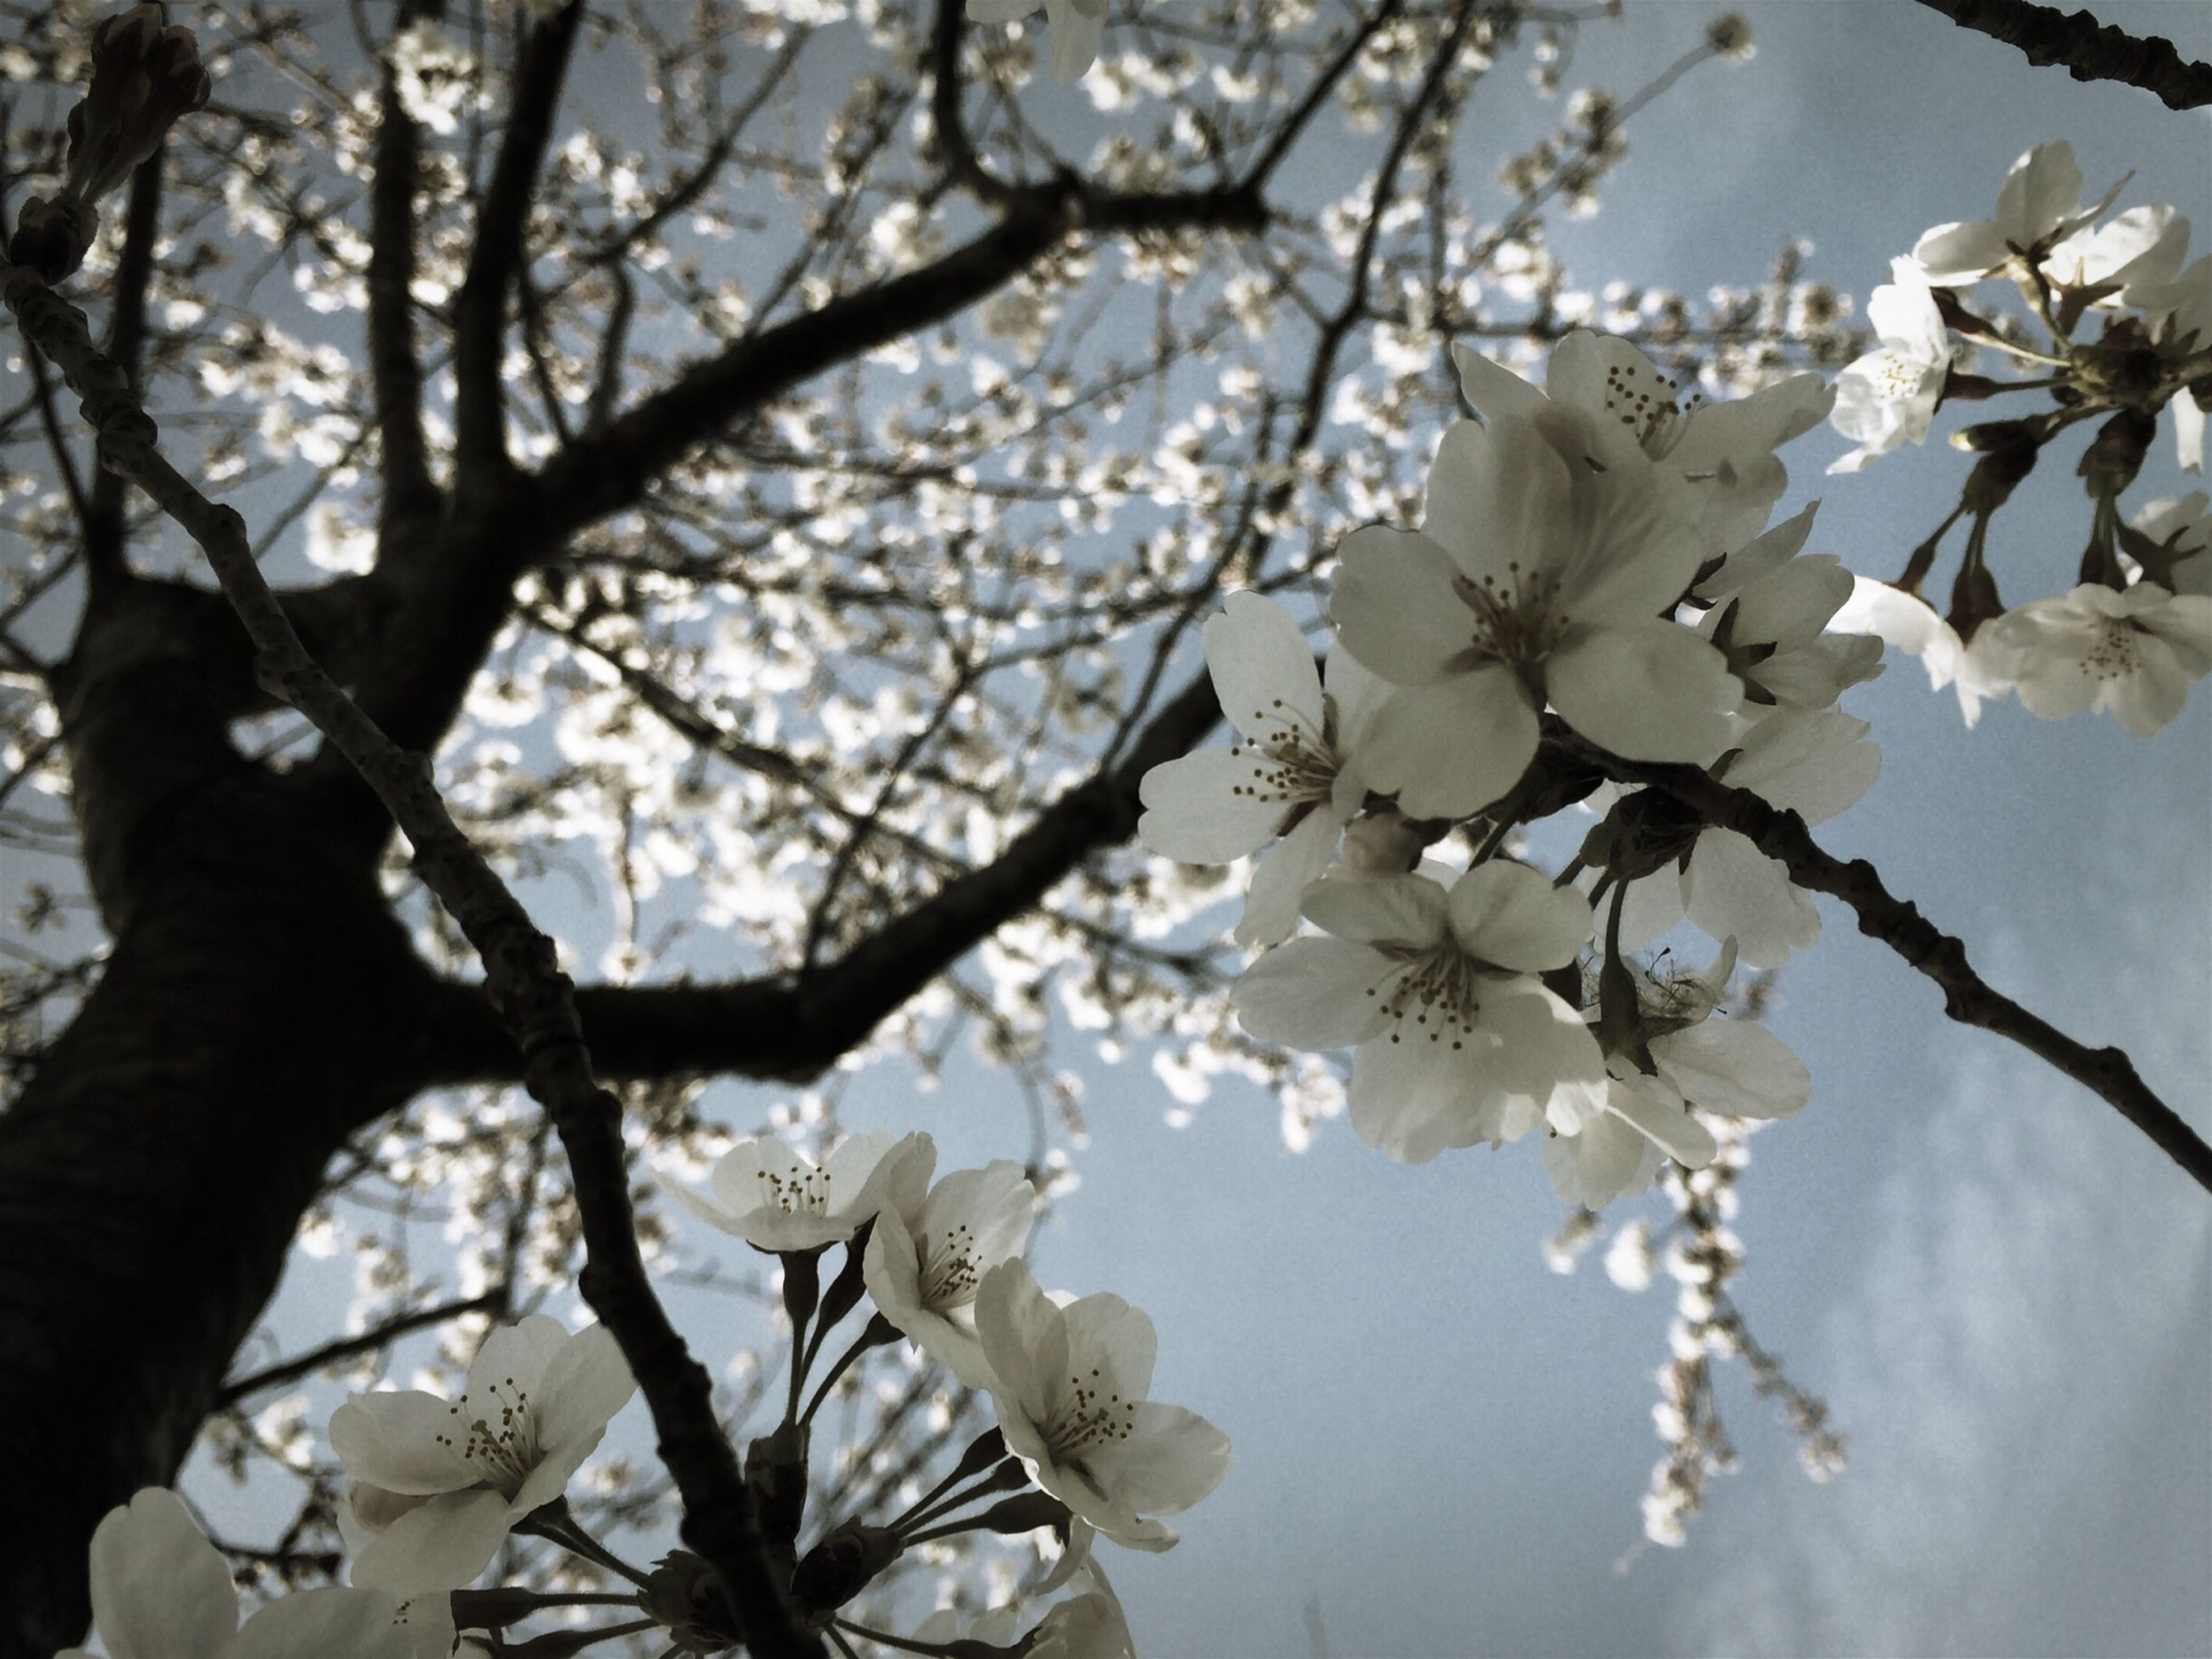 flower, branch, freshness, tree, growth, fragility, beauty in nature, cherry blossom, blossom, nature, low angle view, petal, cherry tree, twig, white color, in bloom, springtime, close-up, blooming, fruit tree